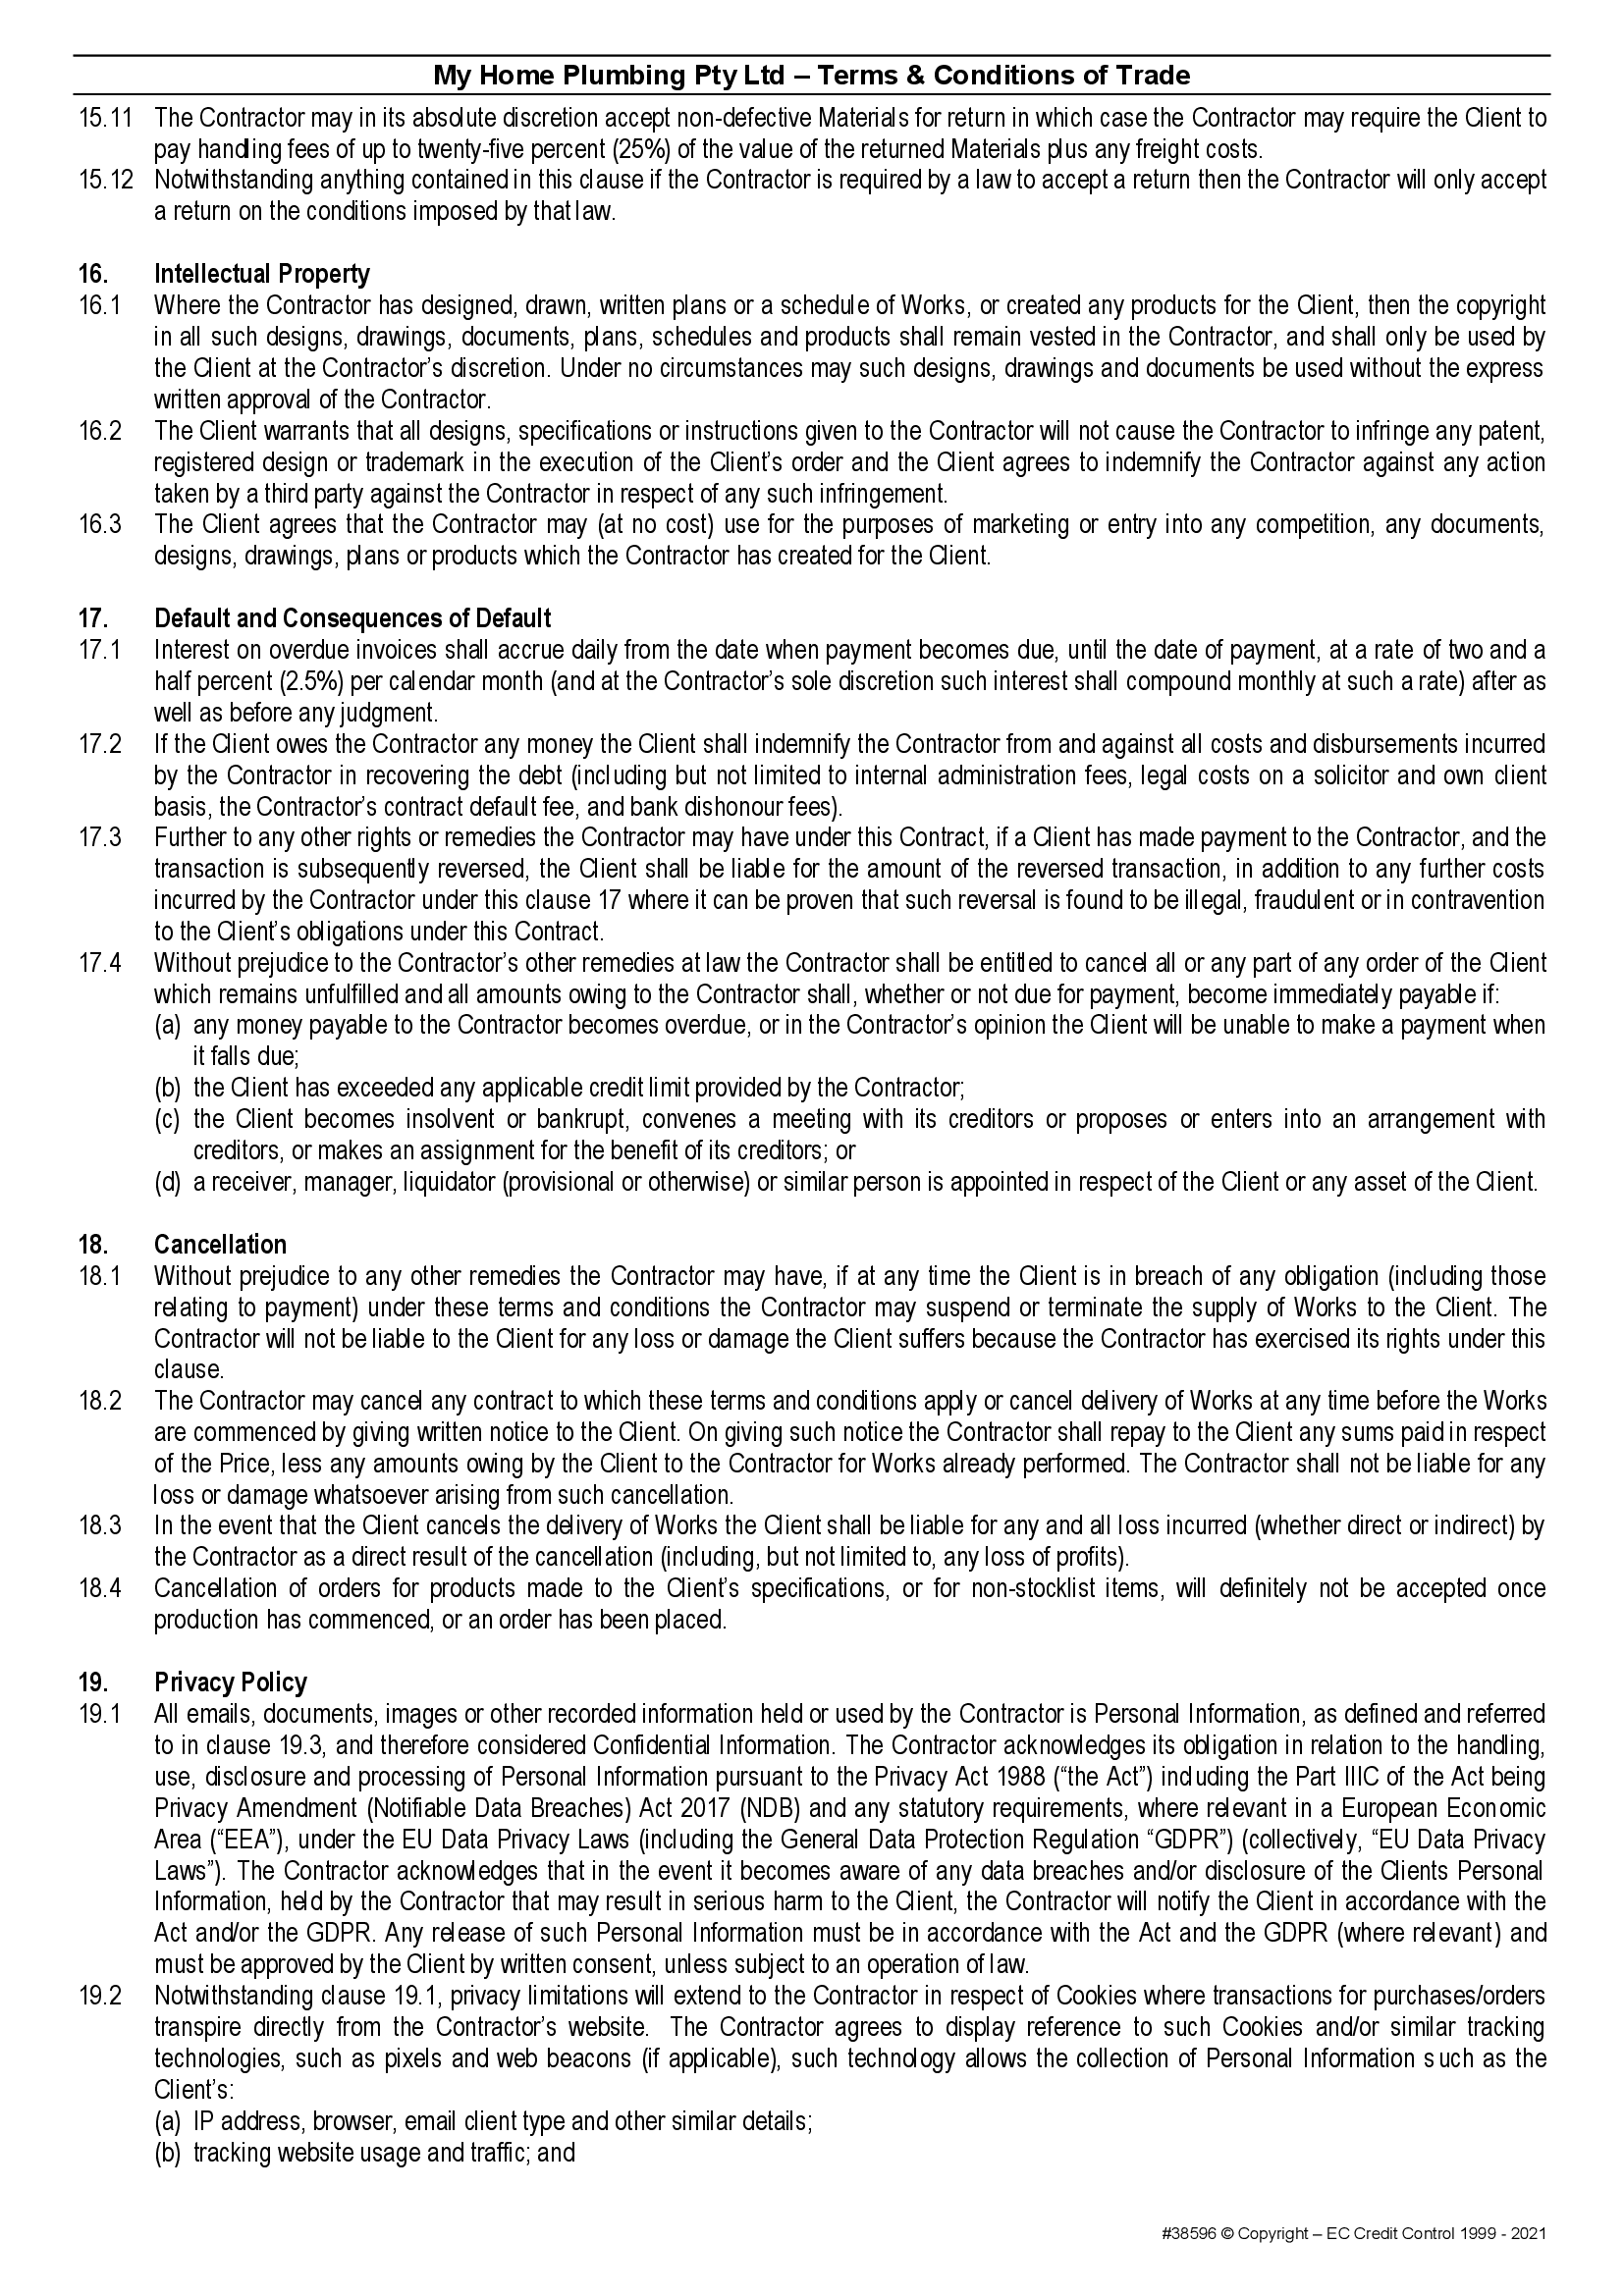 MHP terms and conditions page 6